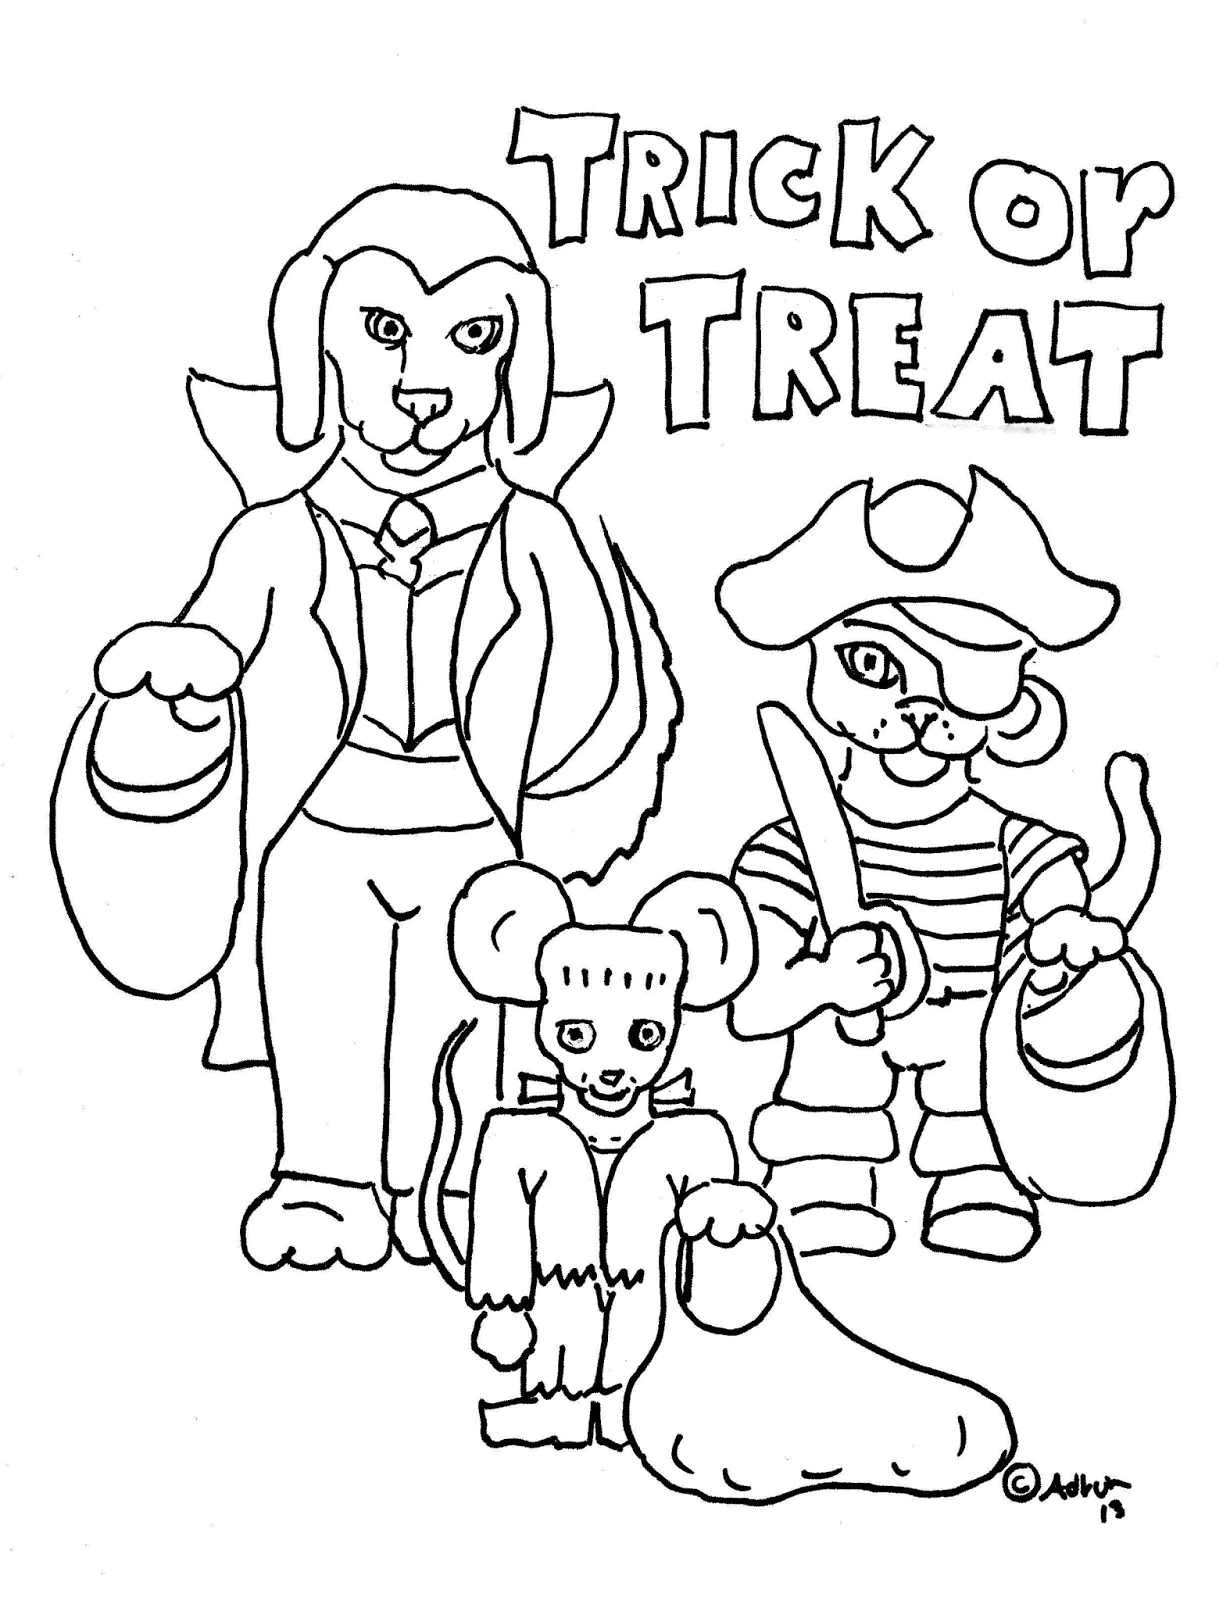 free trick or treat coloring page